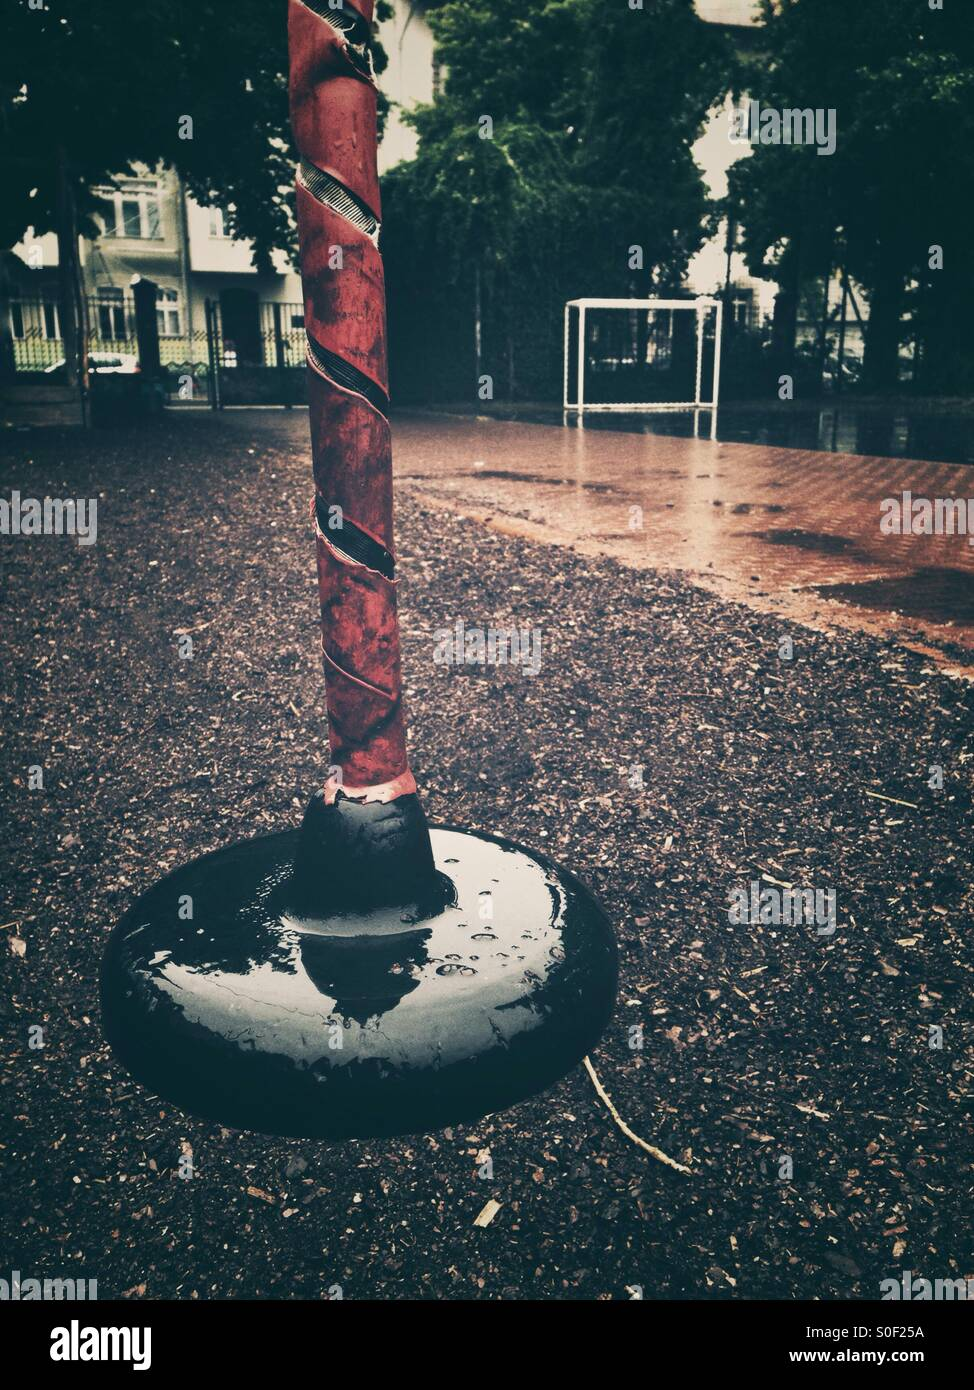 A deserted Playground in the Rain - Stock Image